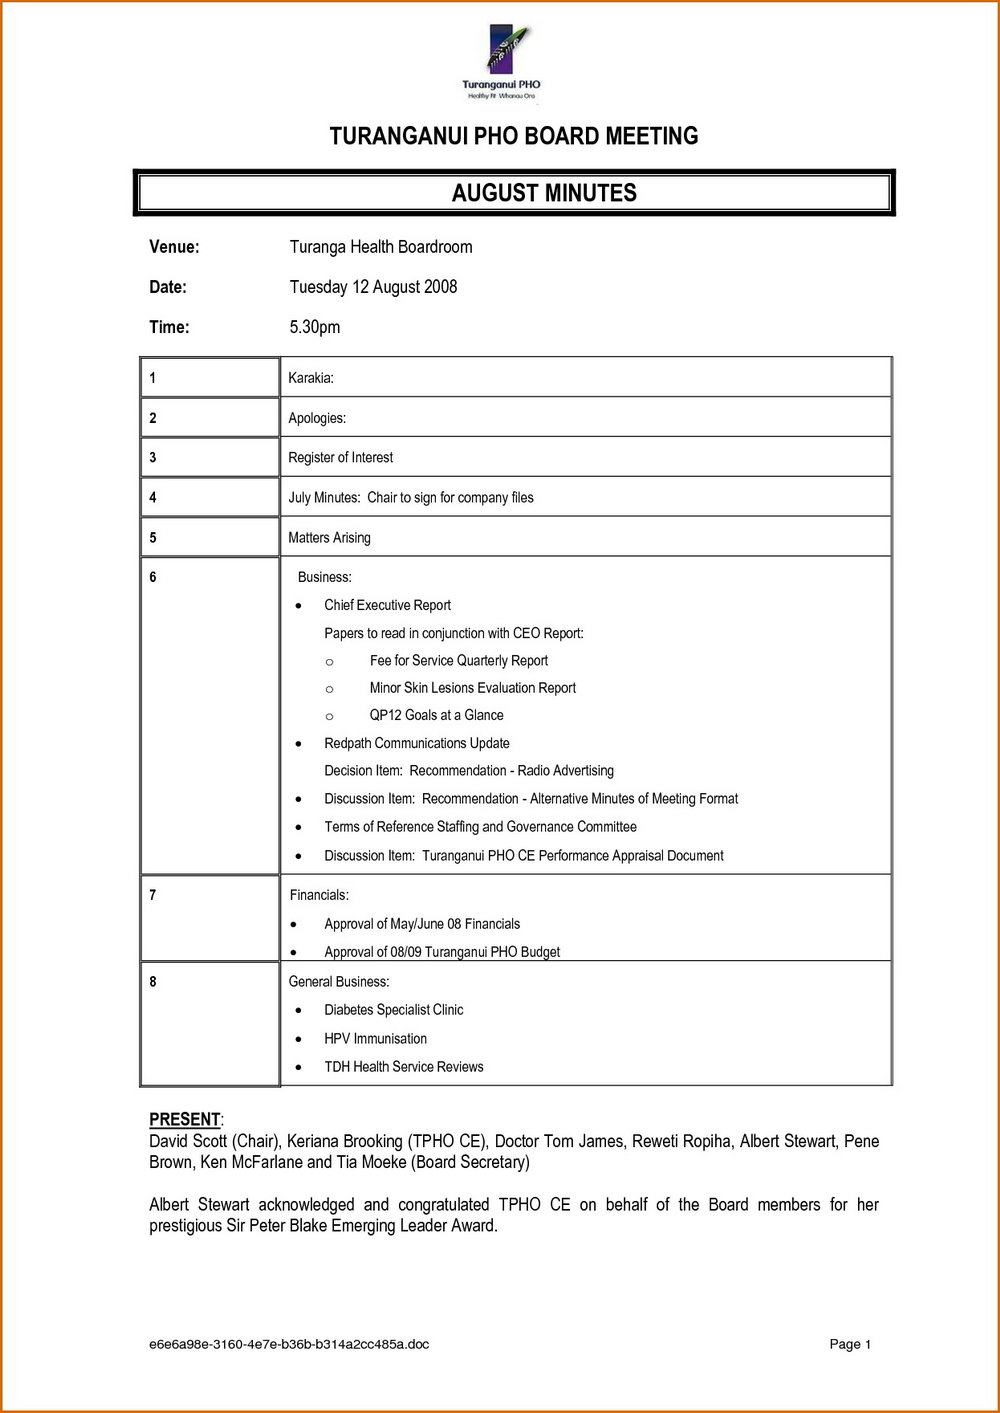 Meeting Minutes Template Docx